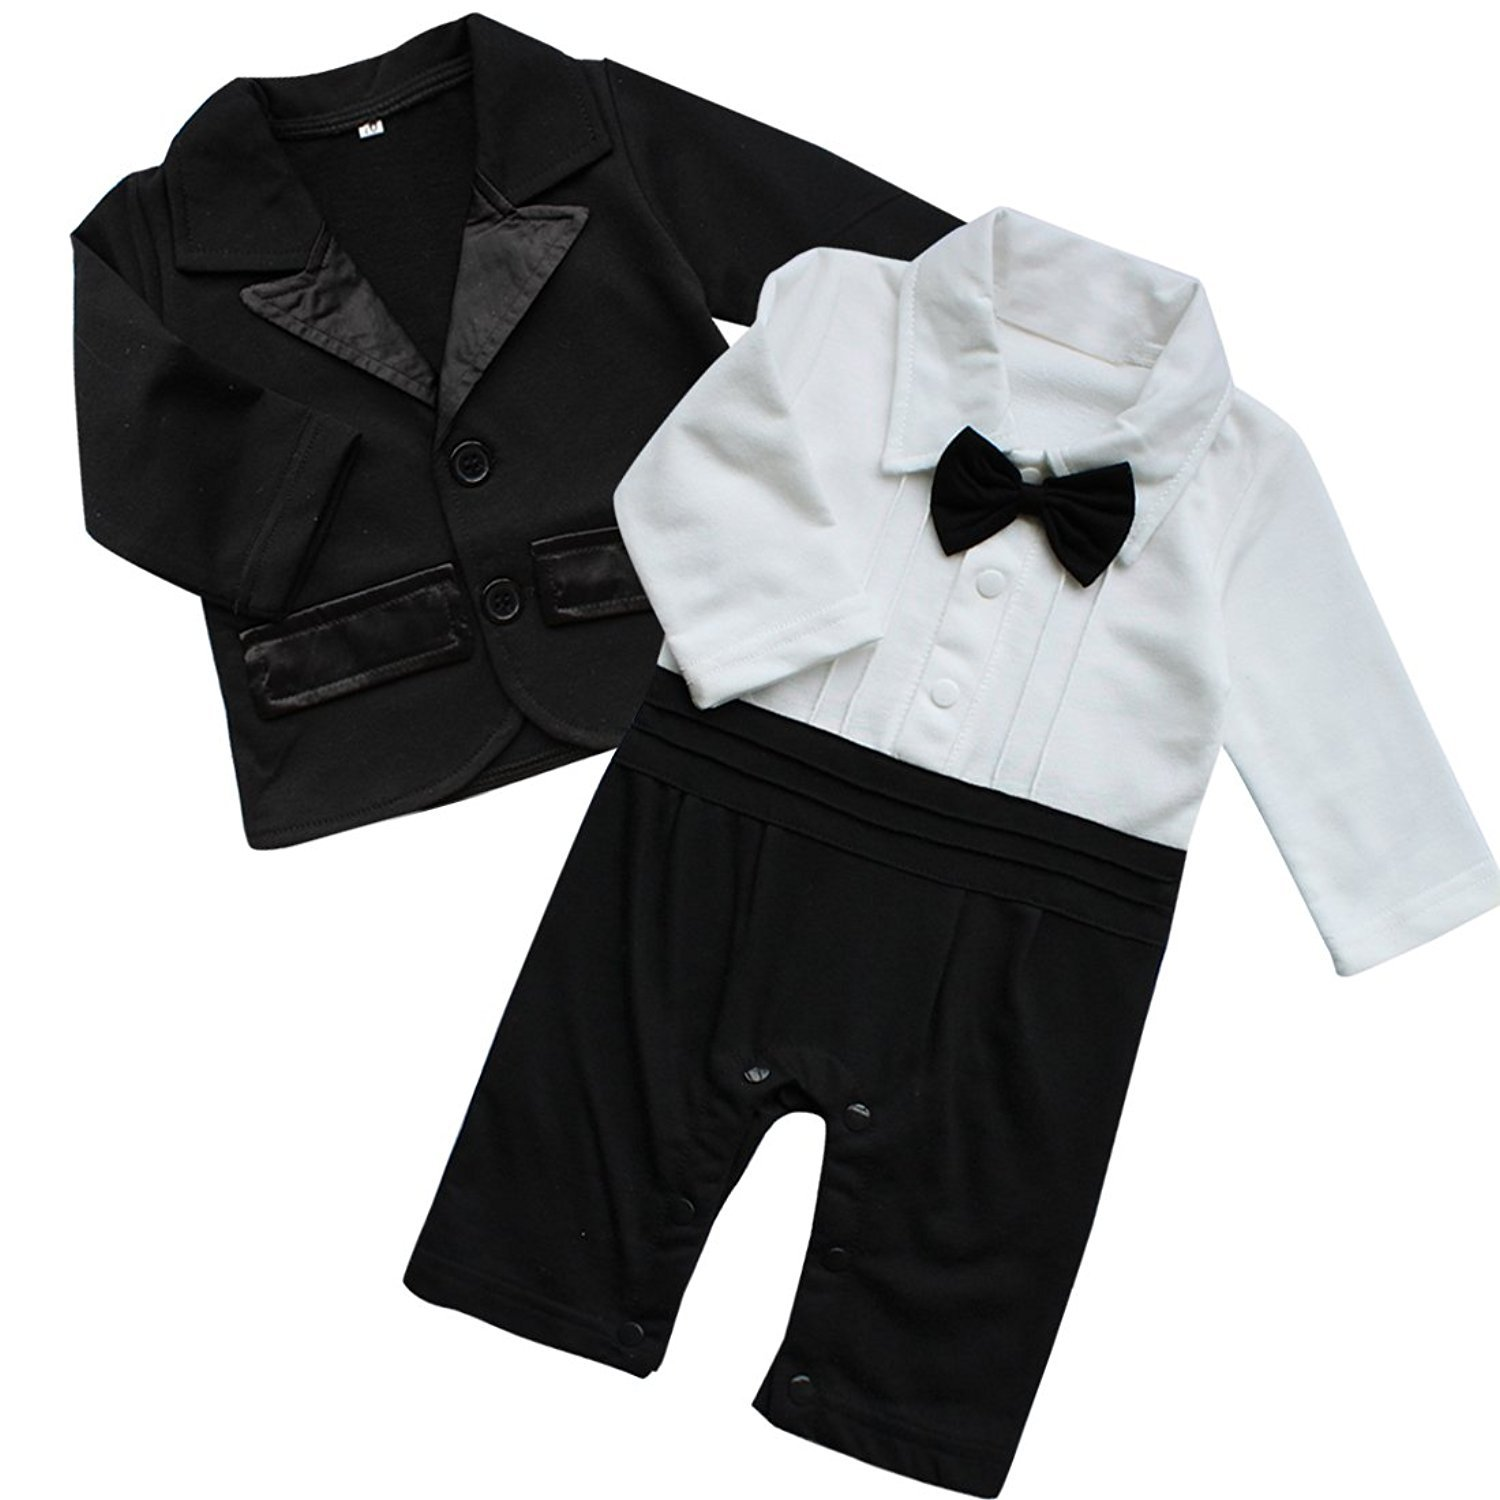 Baby Boy Jumpsuit, 2Pcs Long Sleeve Toddler Tuxedo Gentleman Clothes Outfit with Bowtie & Coat